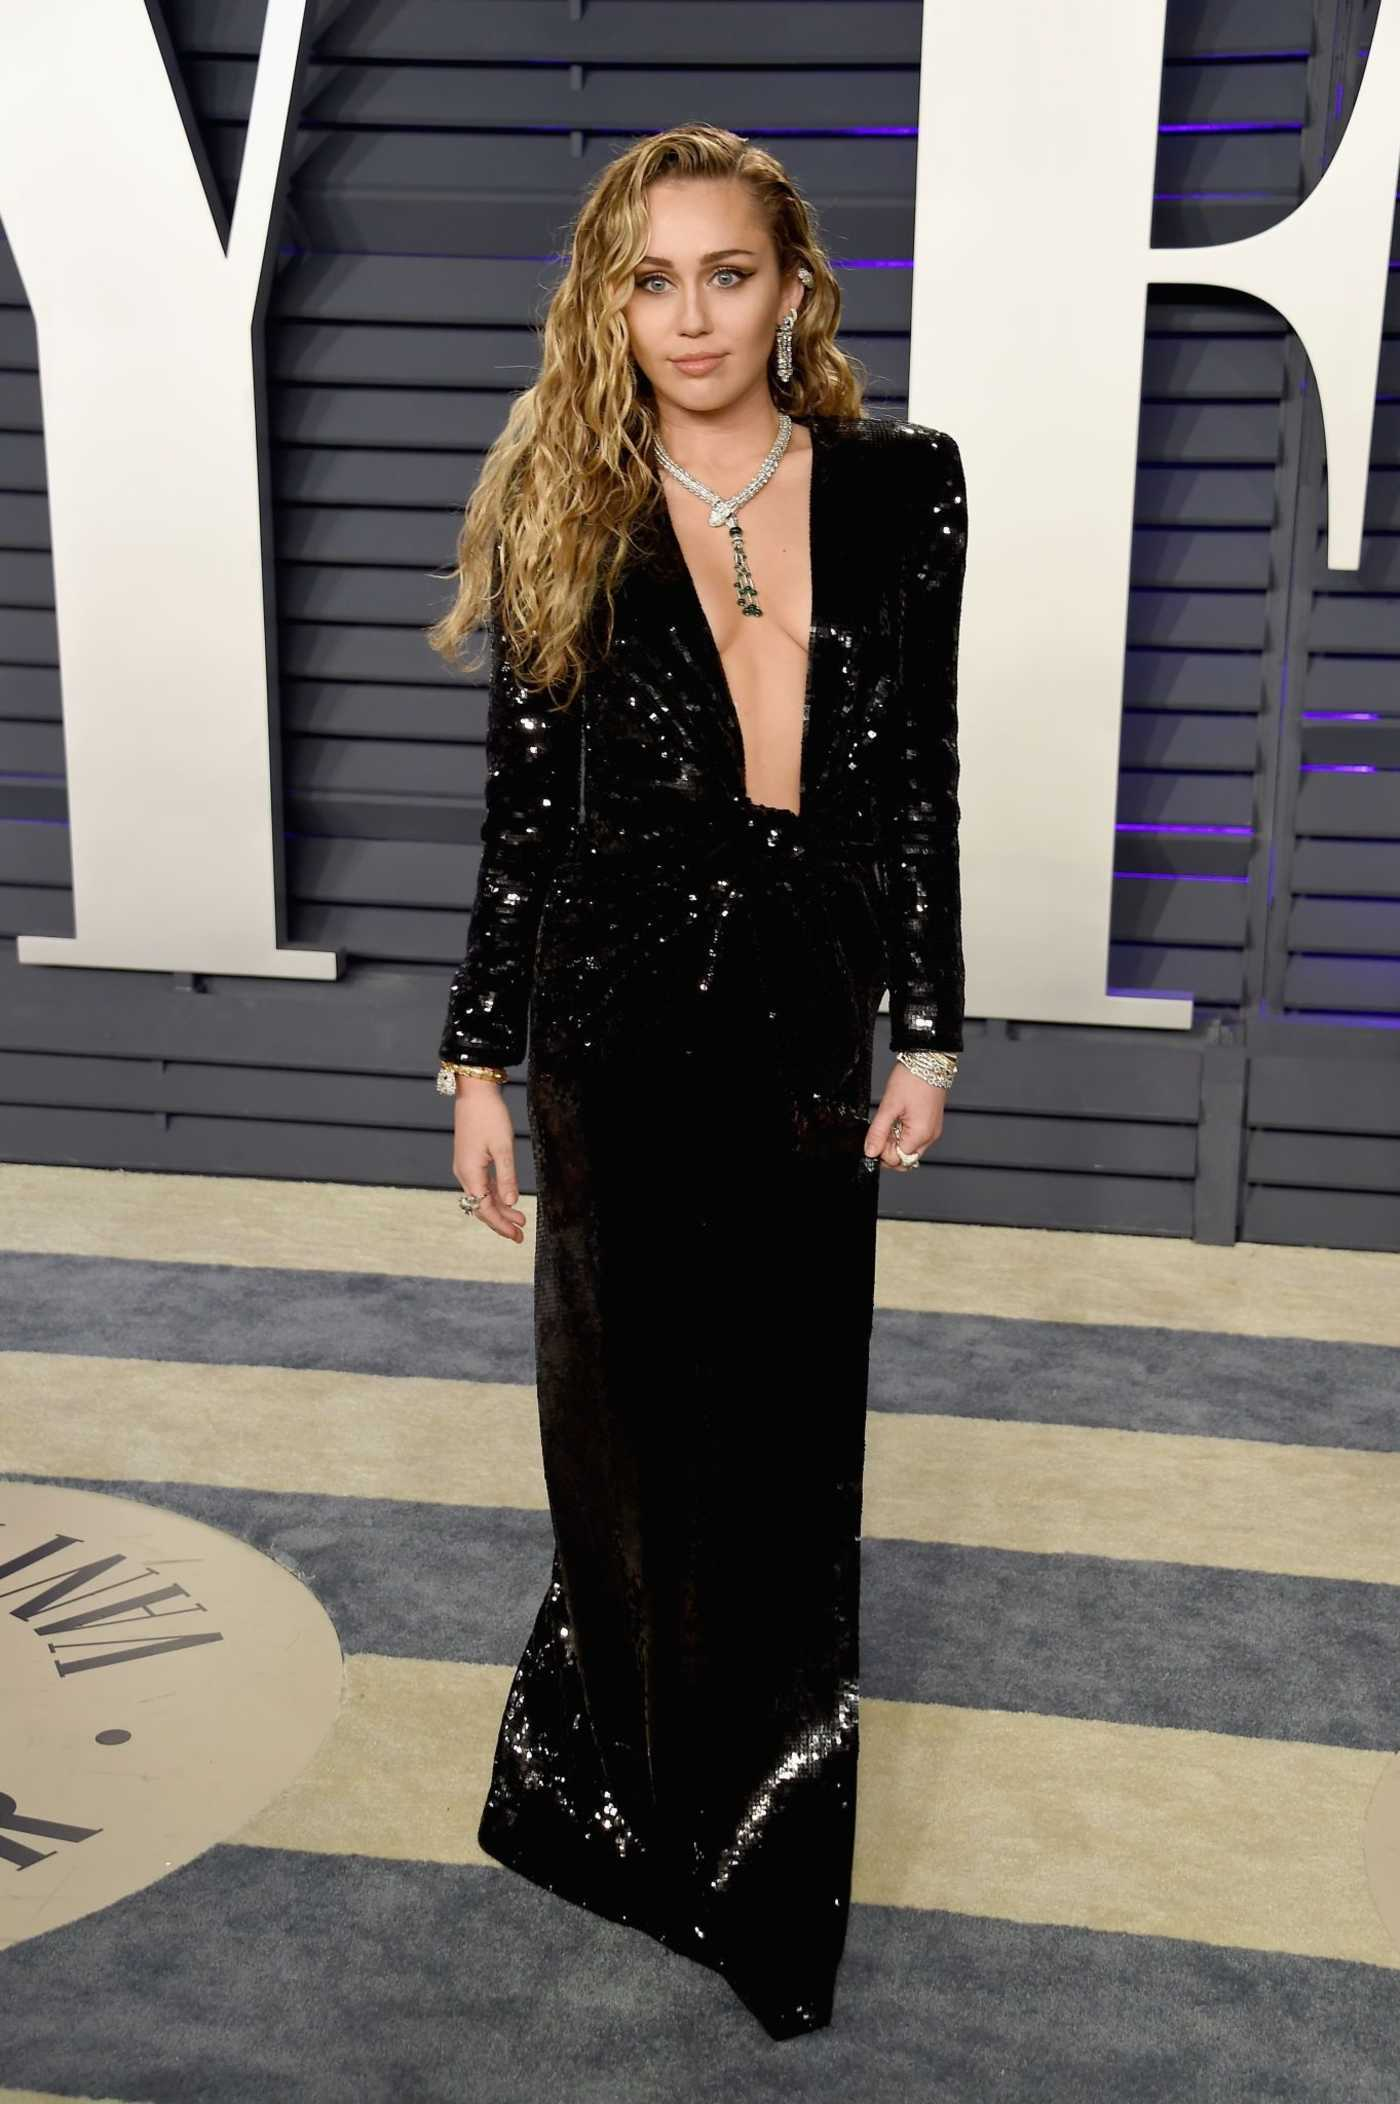 Miley Cyrus Attends 2019 Vanity Fair Oscar Party in Beverly Hills 02/24/2019